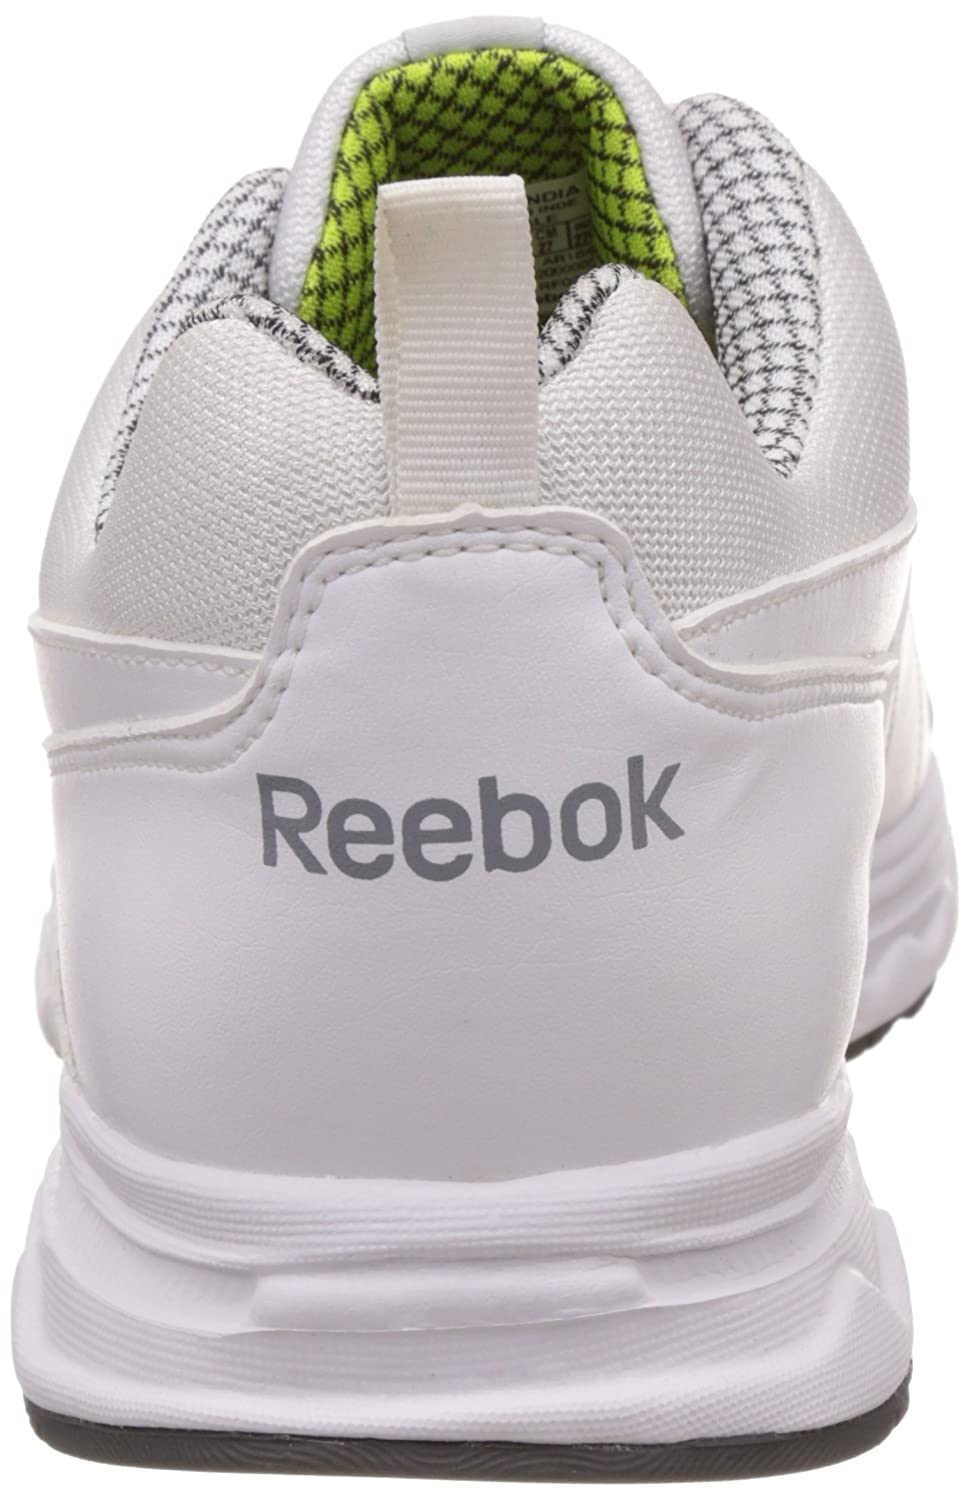 545f6adfc23d Reebok Men s School Sports Running Shoes  Buy Online at Low Prices in India  - Amazon.in